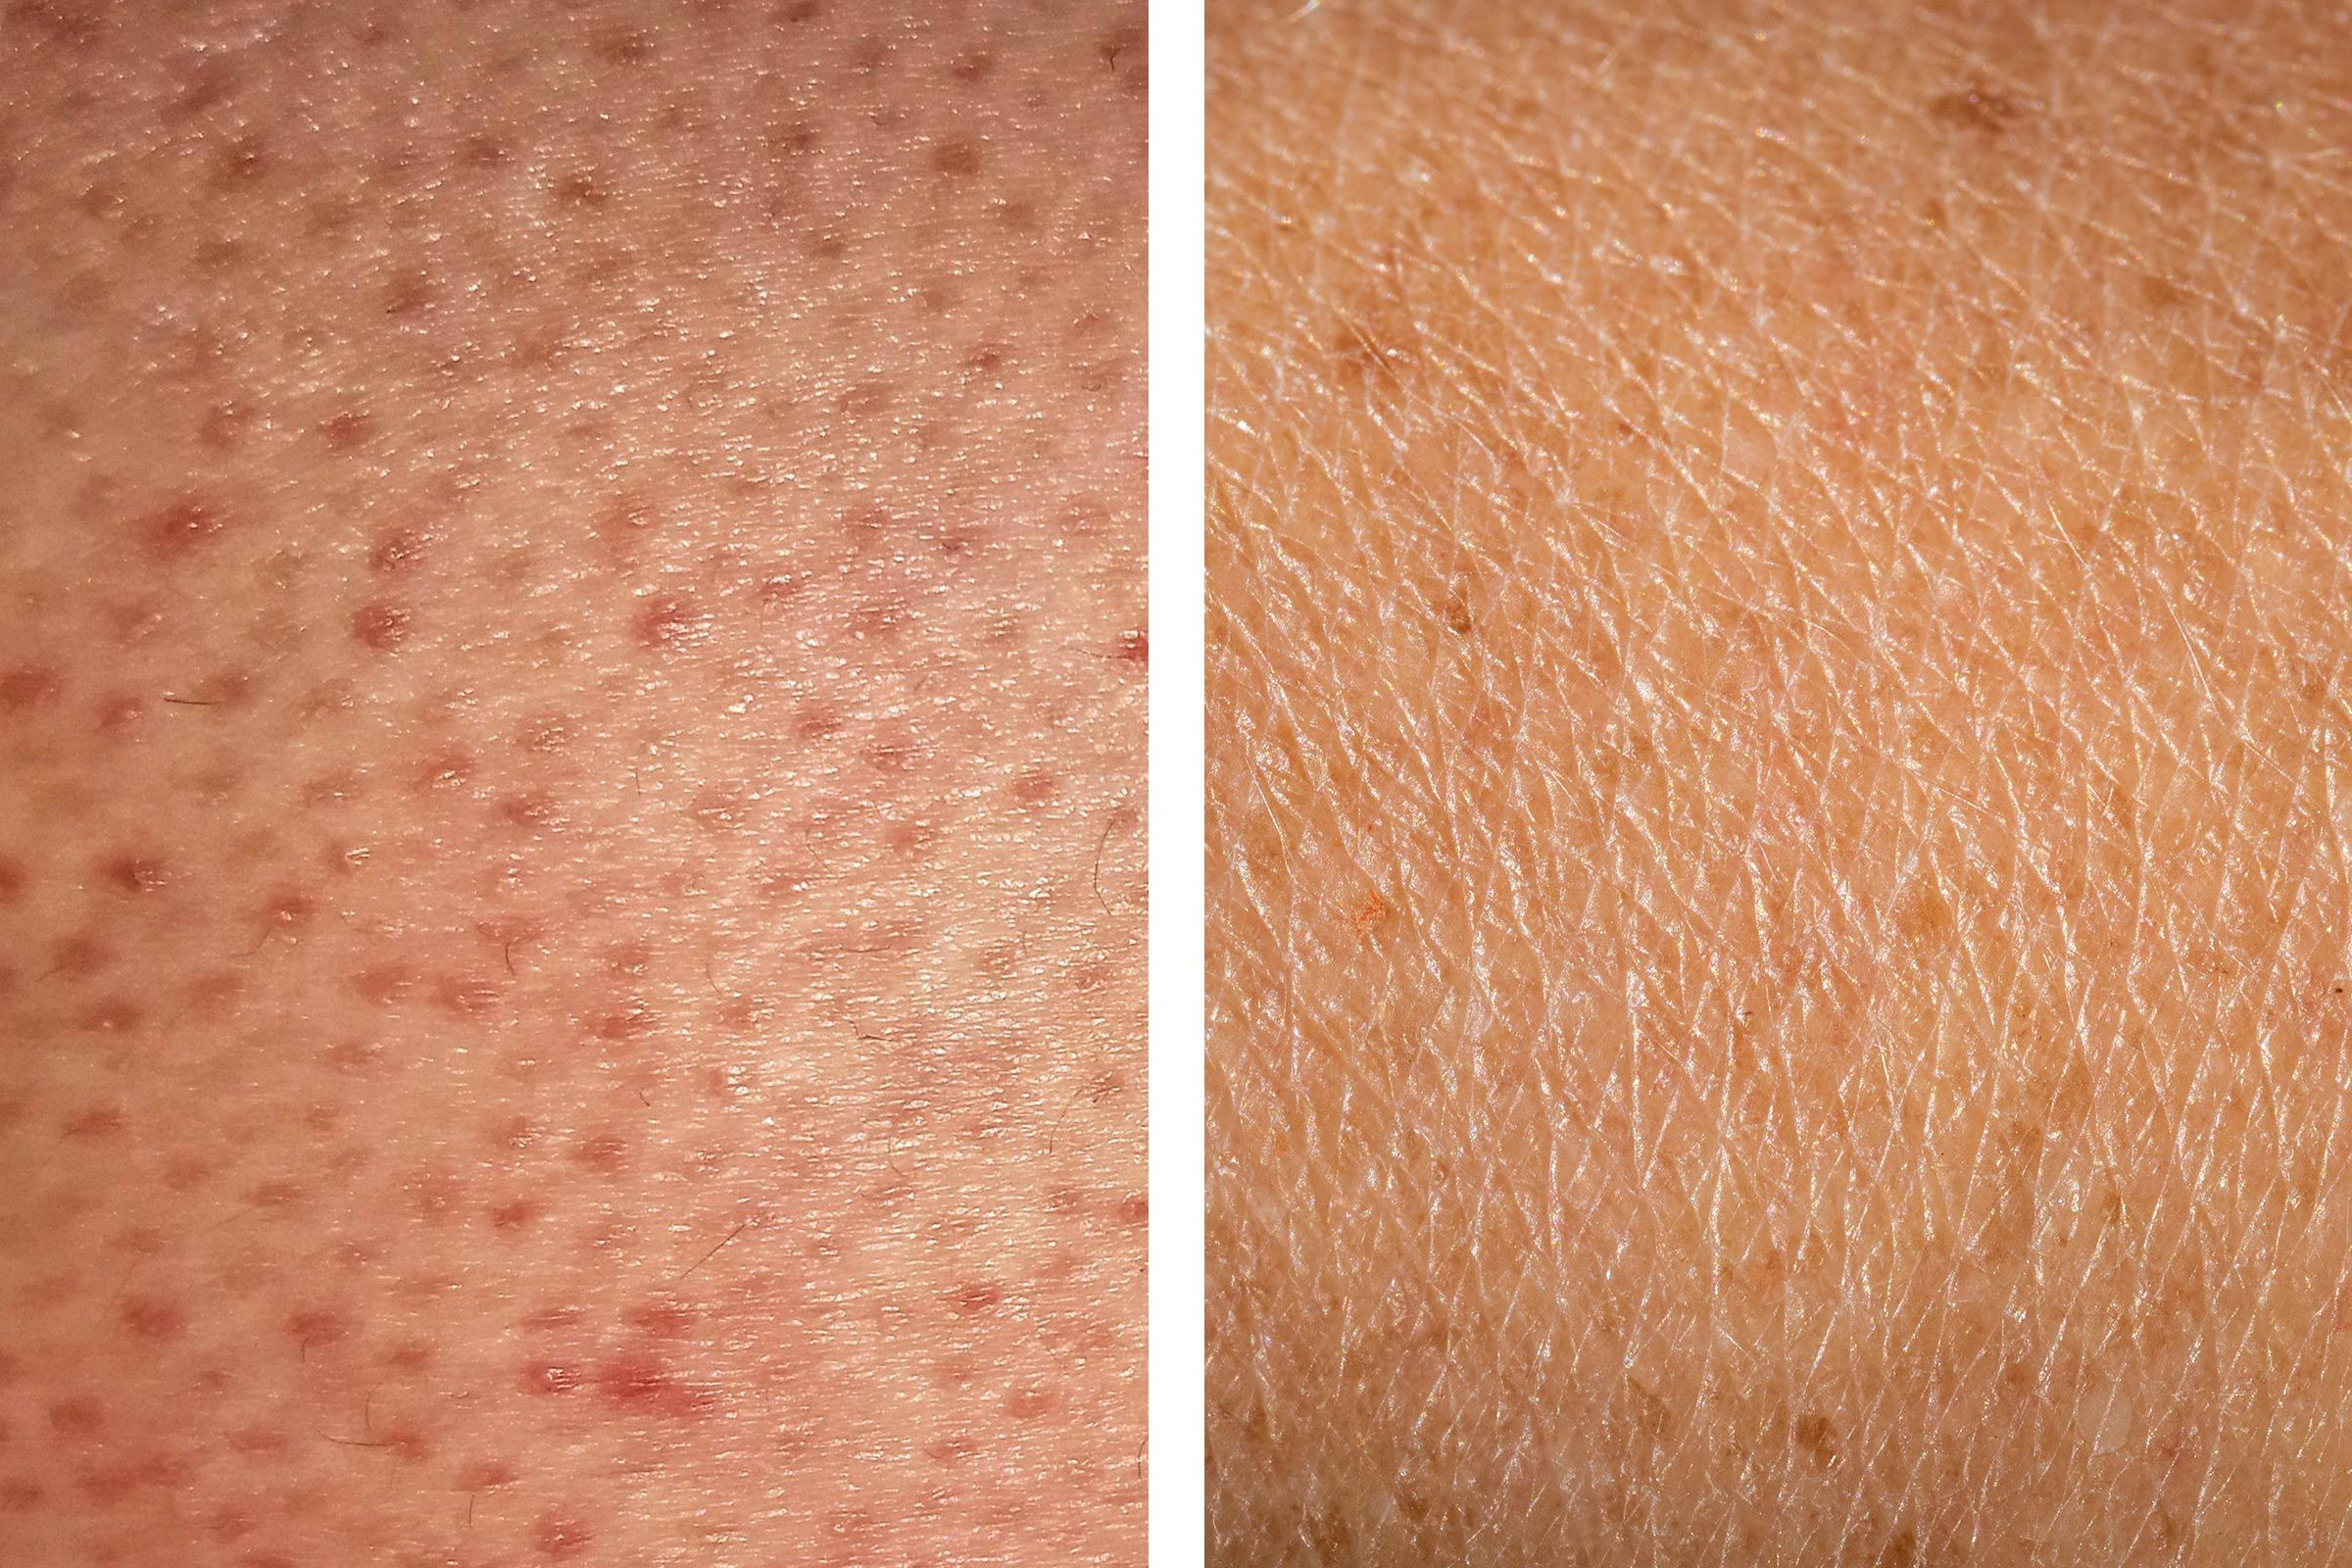 Can You Get Acne On Your Legs How To Get Rid Of Strawberry Legs 5 Treatments That Work Strawberry Legs Ingrown Leg Hair Exfoliate Legs